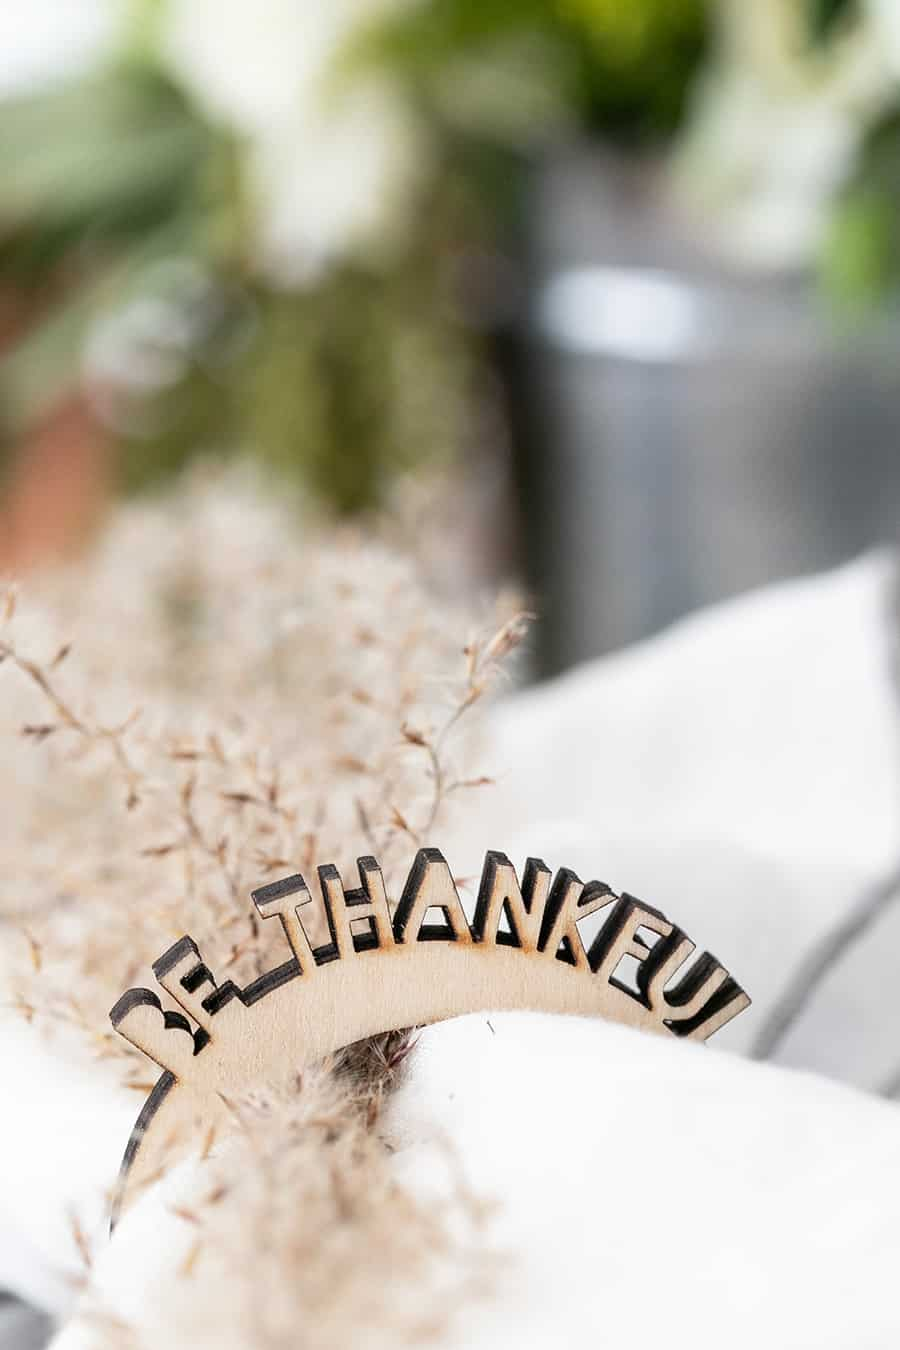 Be Thankful napkin rings for Thanksgiving.